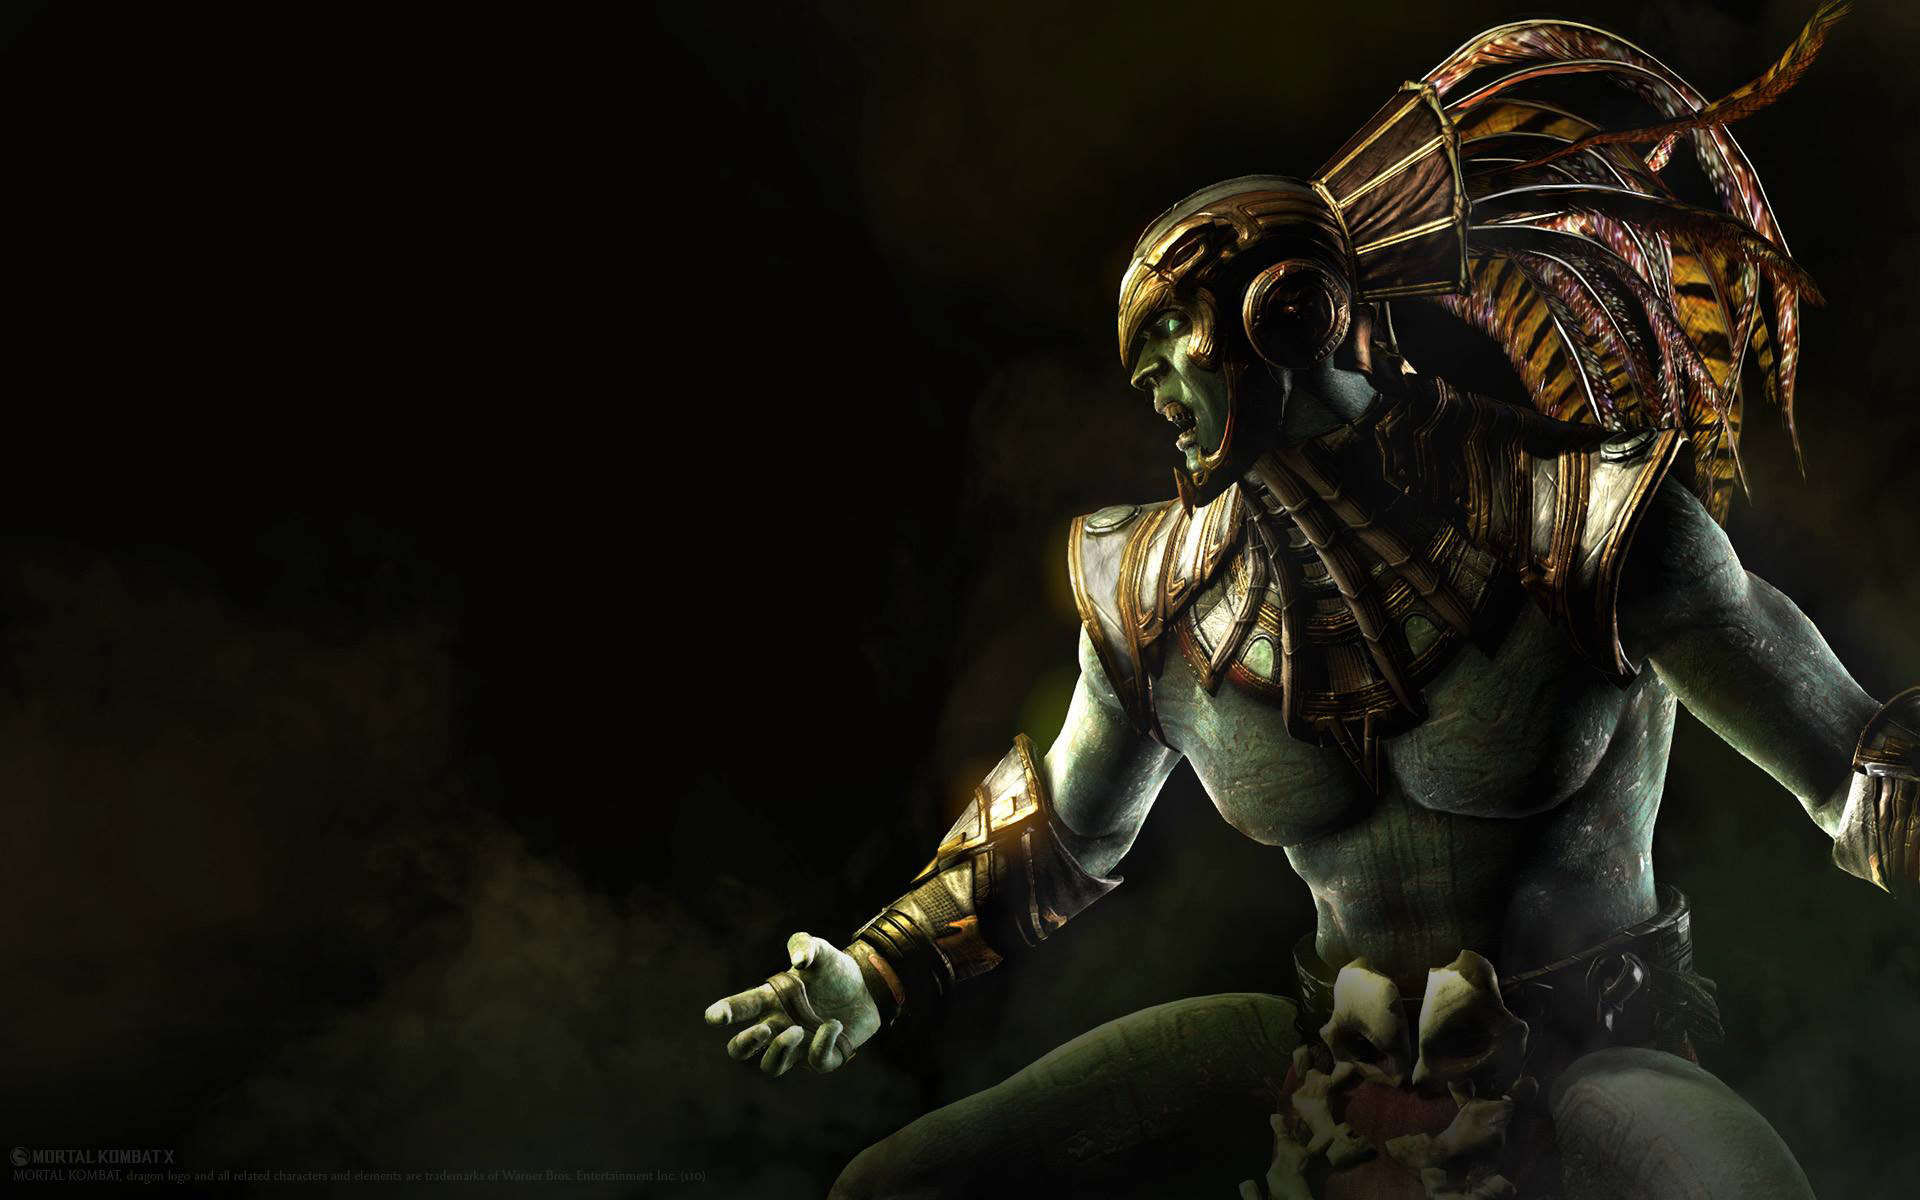 Two Mortal Kombat X Characters To Be Revealed This Week